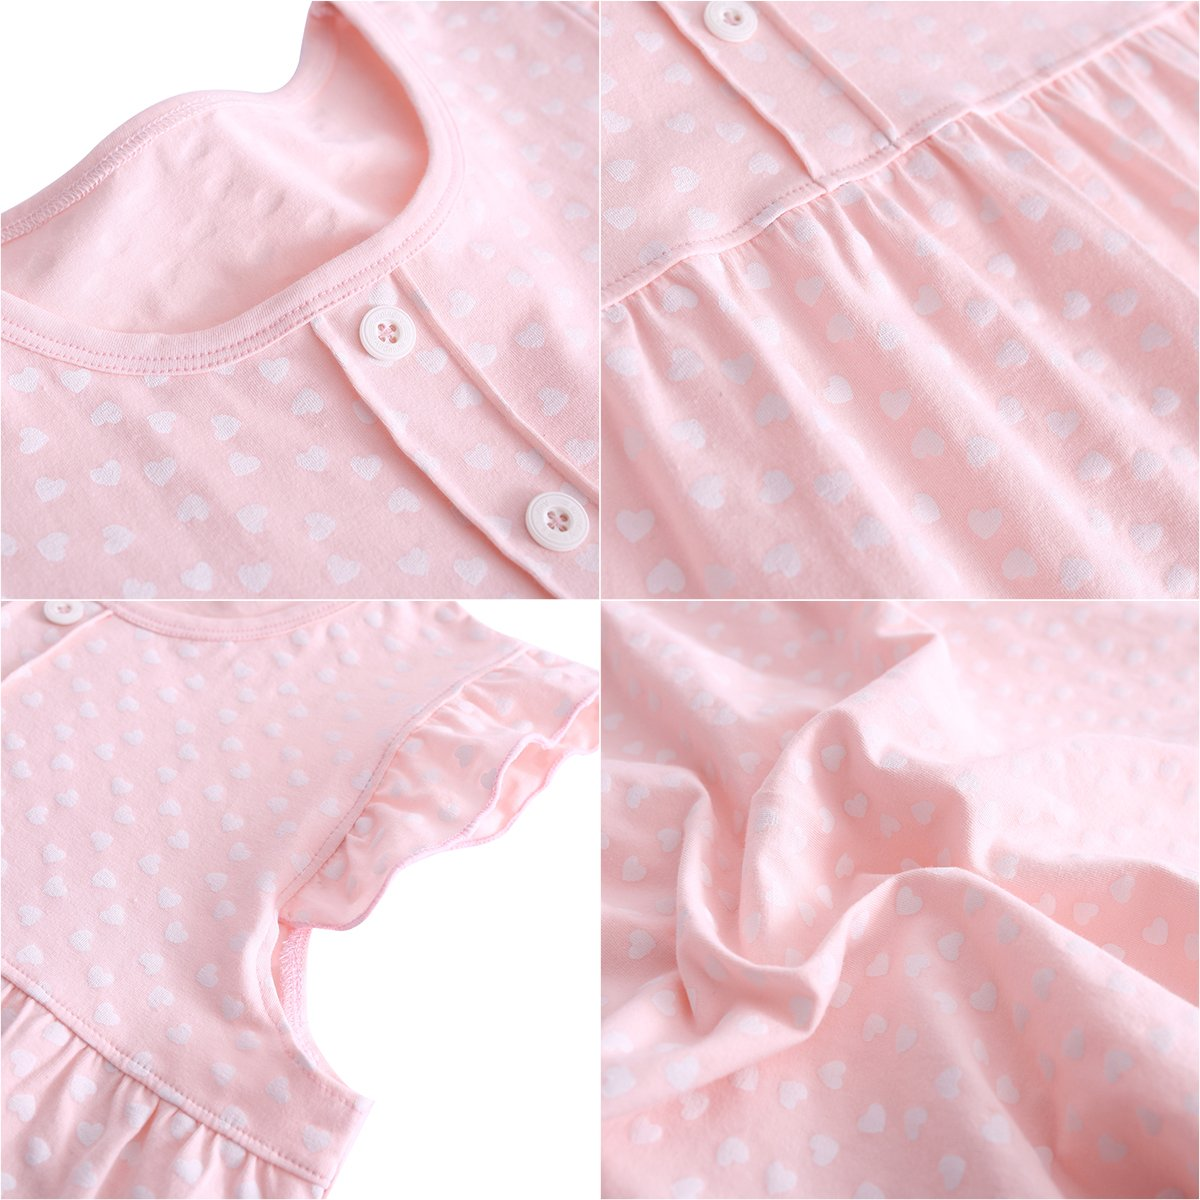 DGAGA Little Girls Princess Nightgown Cotton Lace Bowknot Sleepwear Nightdress (7-8 Years/140cm, Pink) by DGAGA (Image #3)